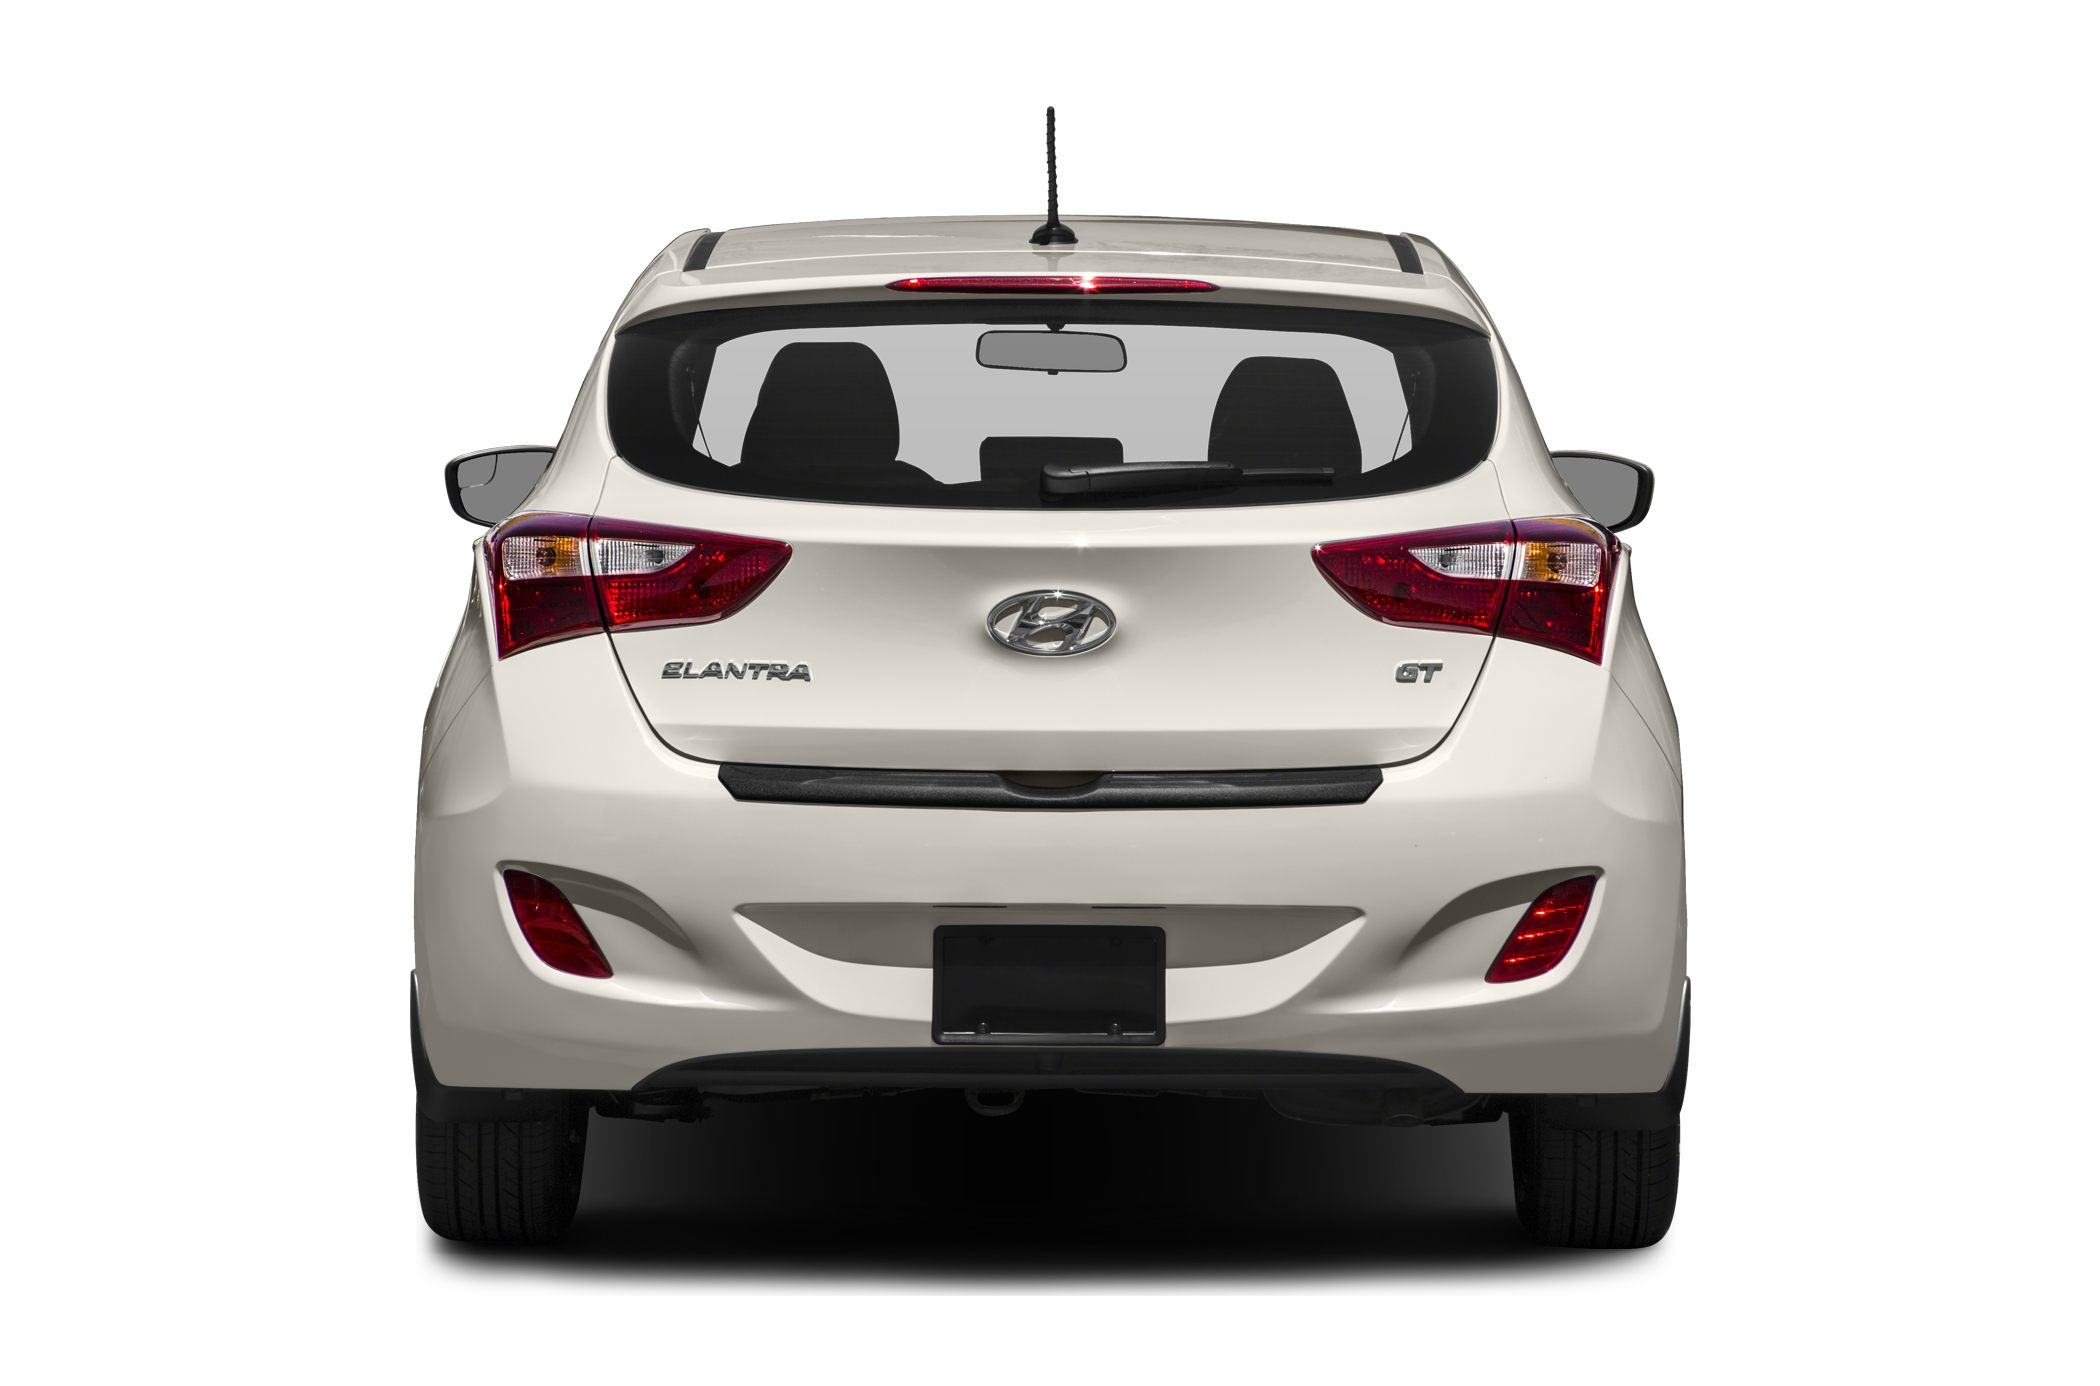 month hyundai summers best kc edition this elantra lease at specials value